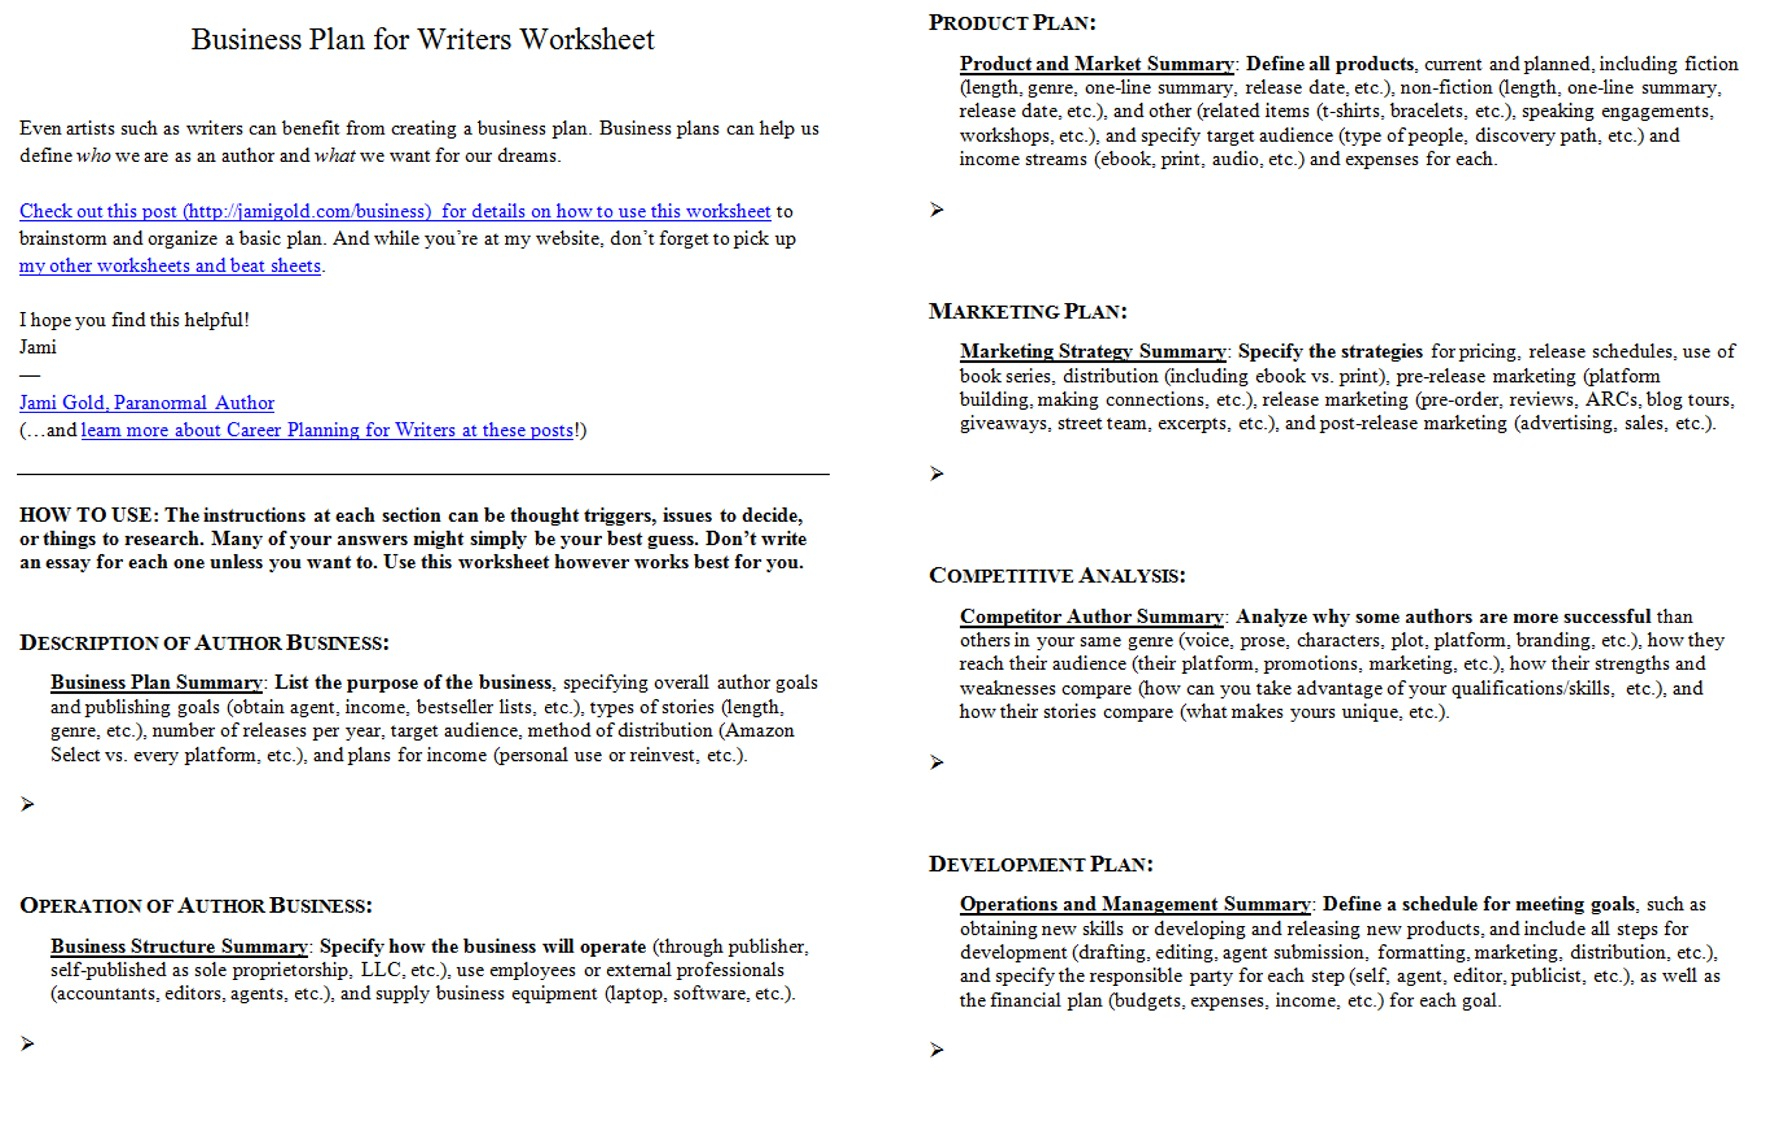 Proatmealus  Pleasing Worksheets For Writers  Jami Gold Paranormal Author With Exciting Screen Shot Of Both Pages Of The Business Plan For Writers Worksheet With Alluring World Map Worksheets Also Three Letter Blends Worksheets In Addition Solutions Worksheet  Molarity And Dilution Problems And Pythagorean Theorem Worksheet Kuta As Well As Math Worksheet Th Grade Additionally Atomic Bomb Worksheet From Jamigoldcom With Proatmealus  Exciting Worksheets For Writers  Jami Gold Paranormal Author With Alluring Screen Shot Of Both Pages Of The Business Plan For Writers Worksheet And Pleasing World Map Worksheets Also Three Letter Blends Worksheets In Addition Solutions Worksheet  Molarity And Dilution Problems From Jamigoldcom